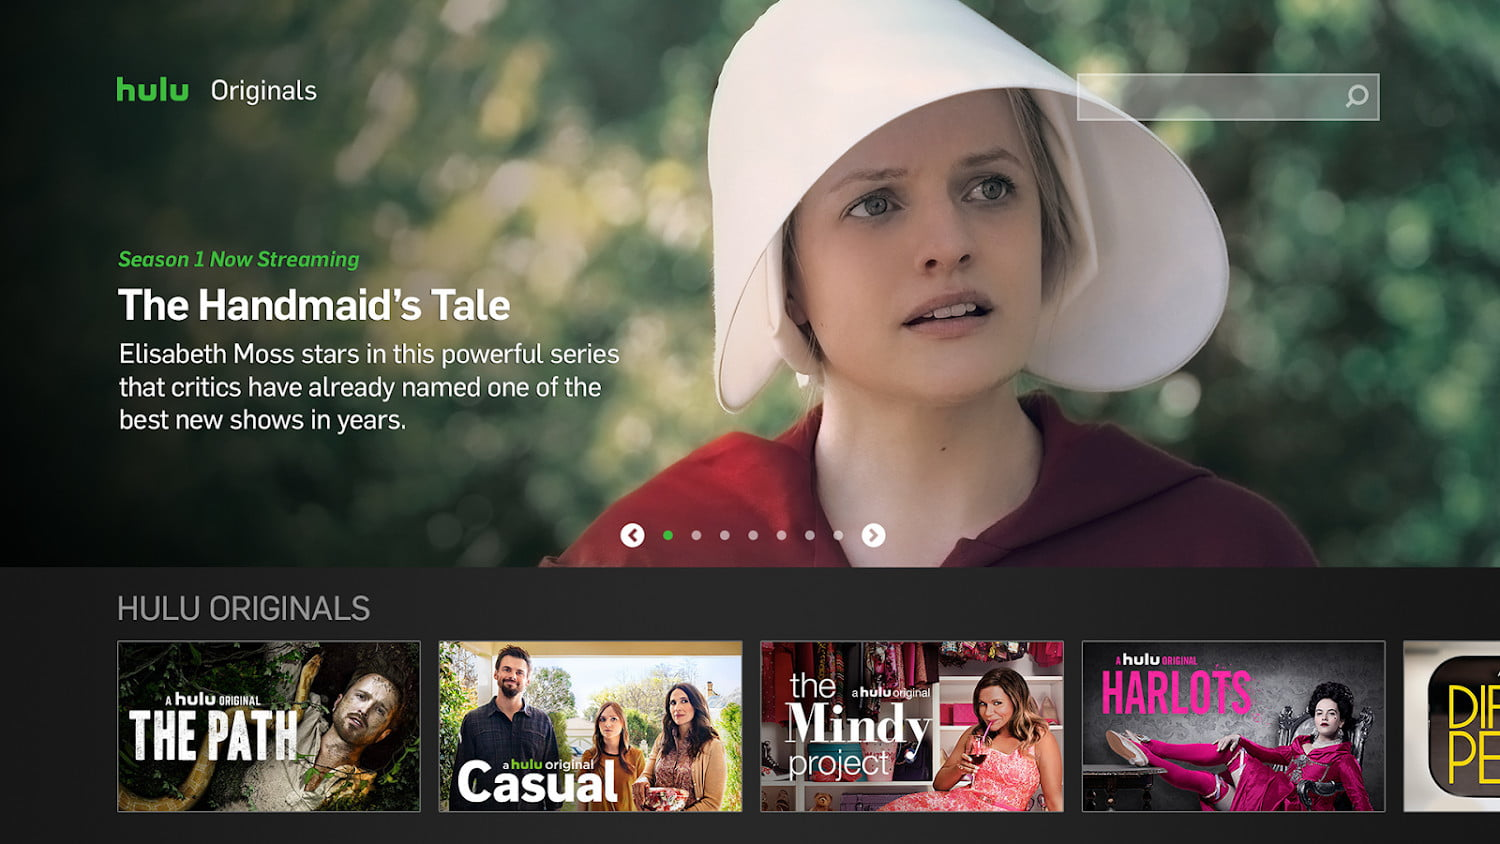 Android TV Finally Gets the Full Hulu Experience, Including